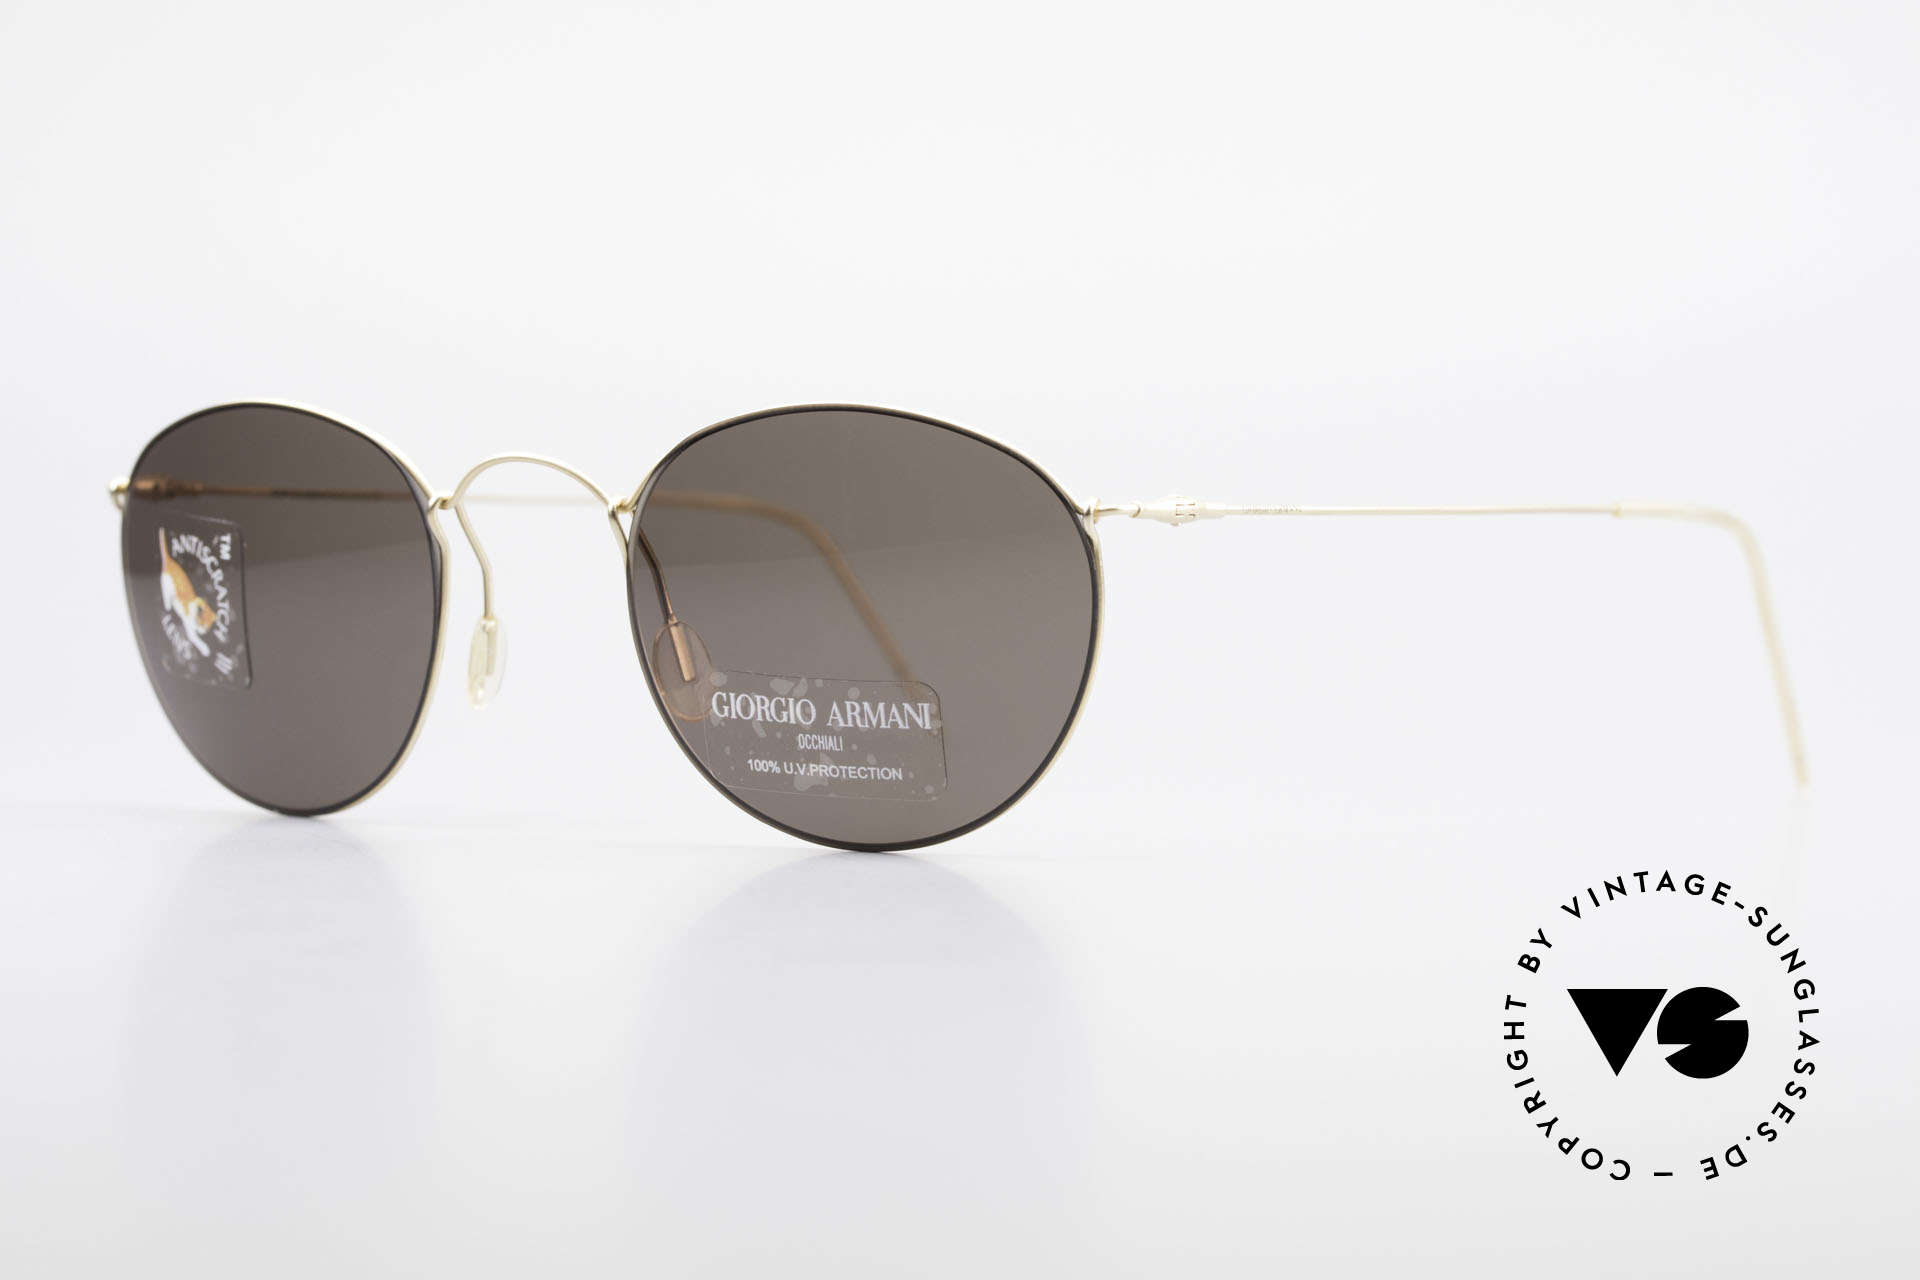 Giorgio Armani 3006 90's Panto Wire Sunglasses, but distinctive and very comfortable (lightweight: 12g), Made for Men